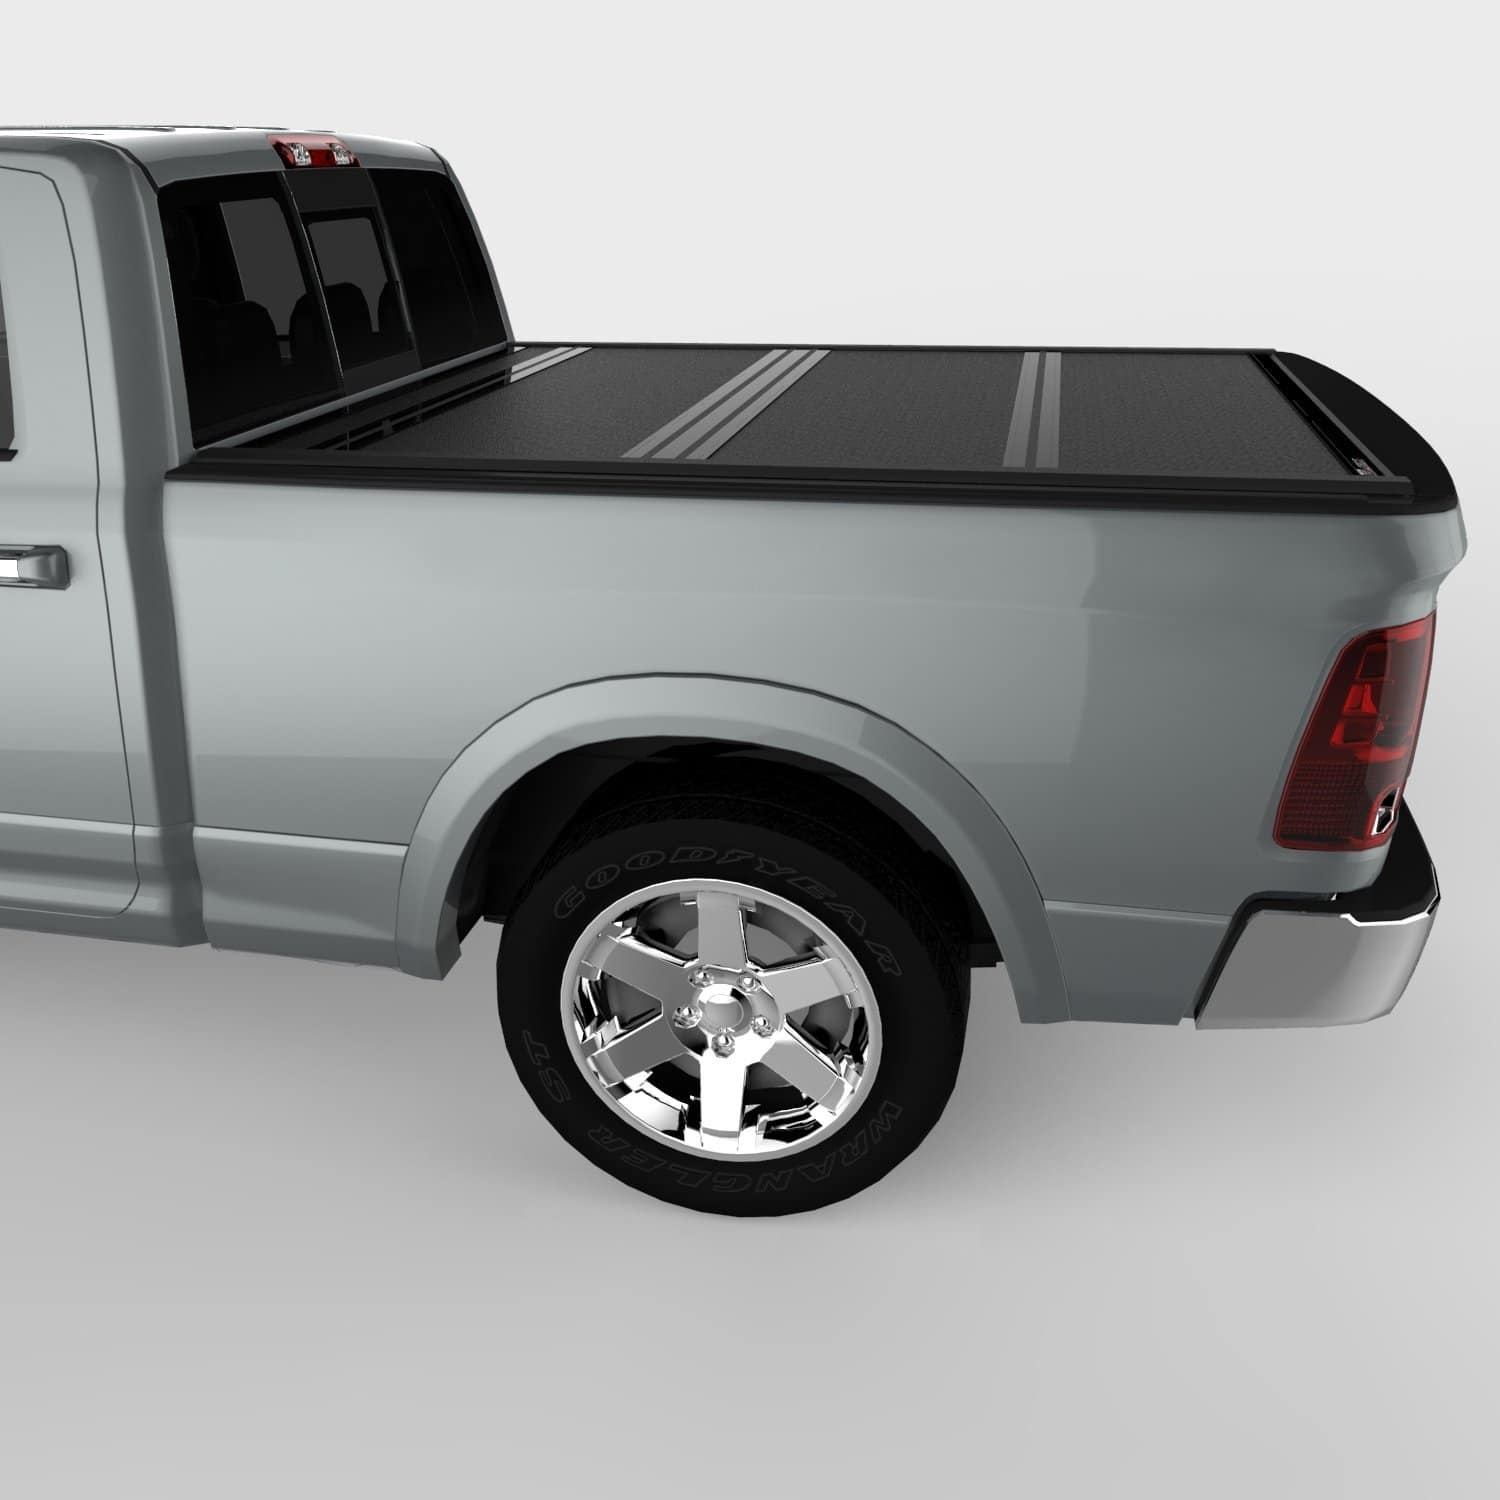 UnderCover Flex Hard Folding Tonneau Truck Bed Cover for Ram 1500